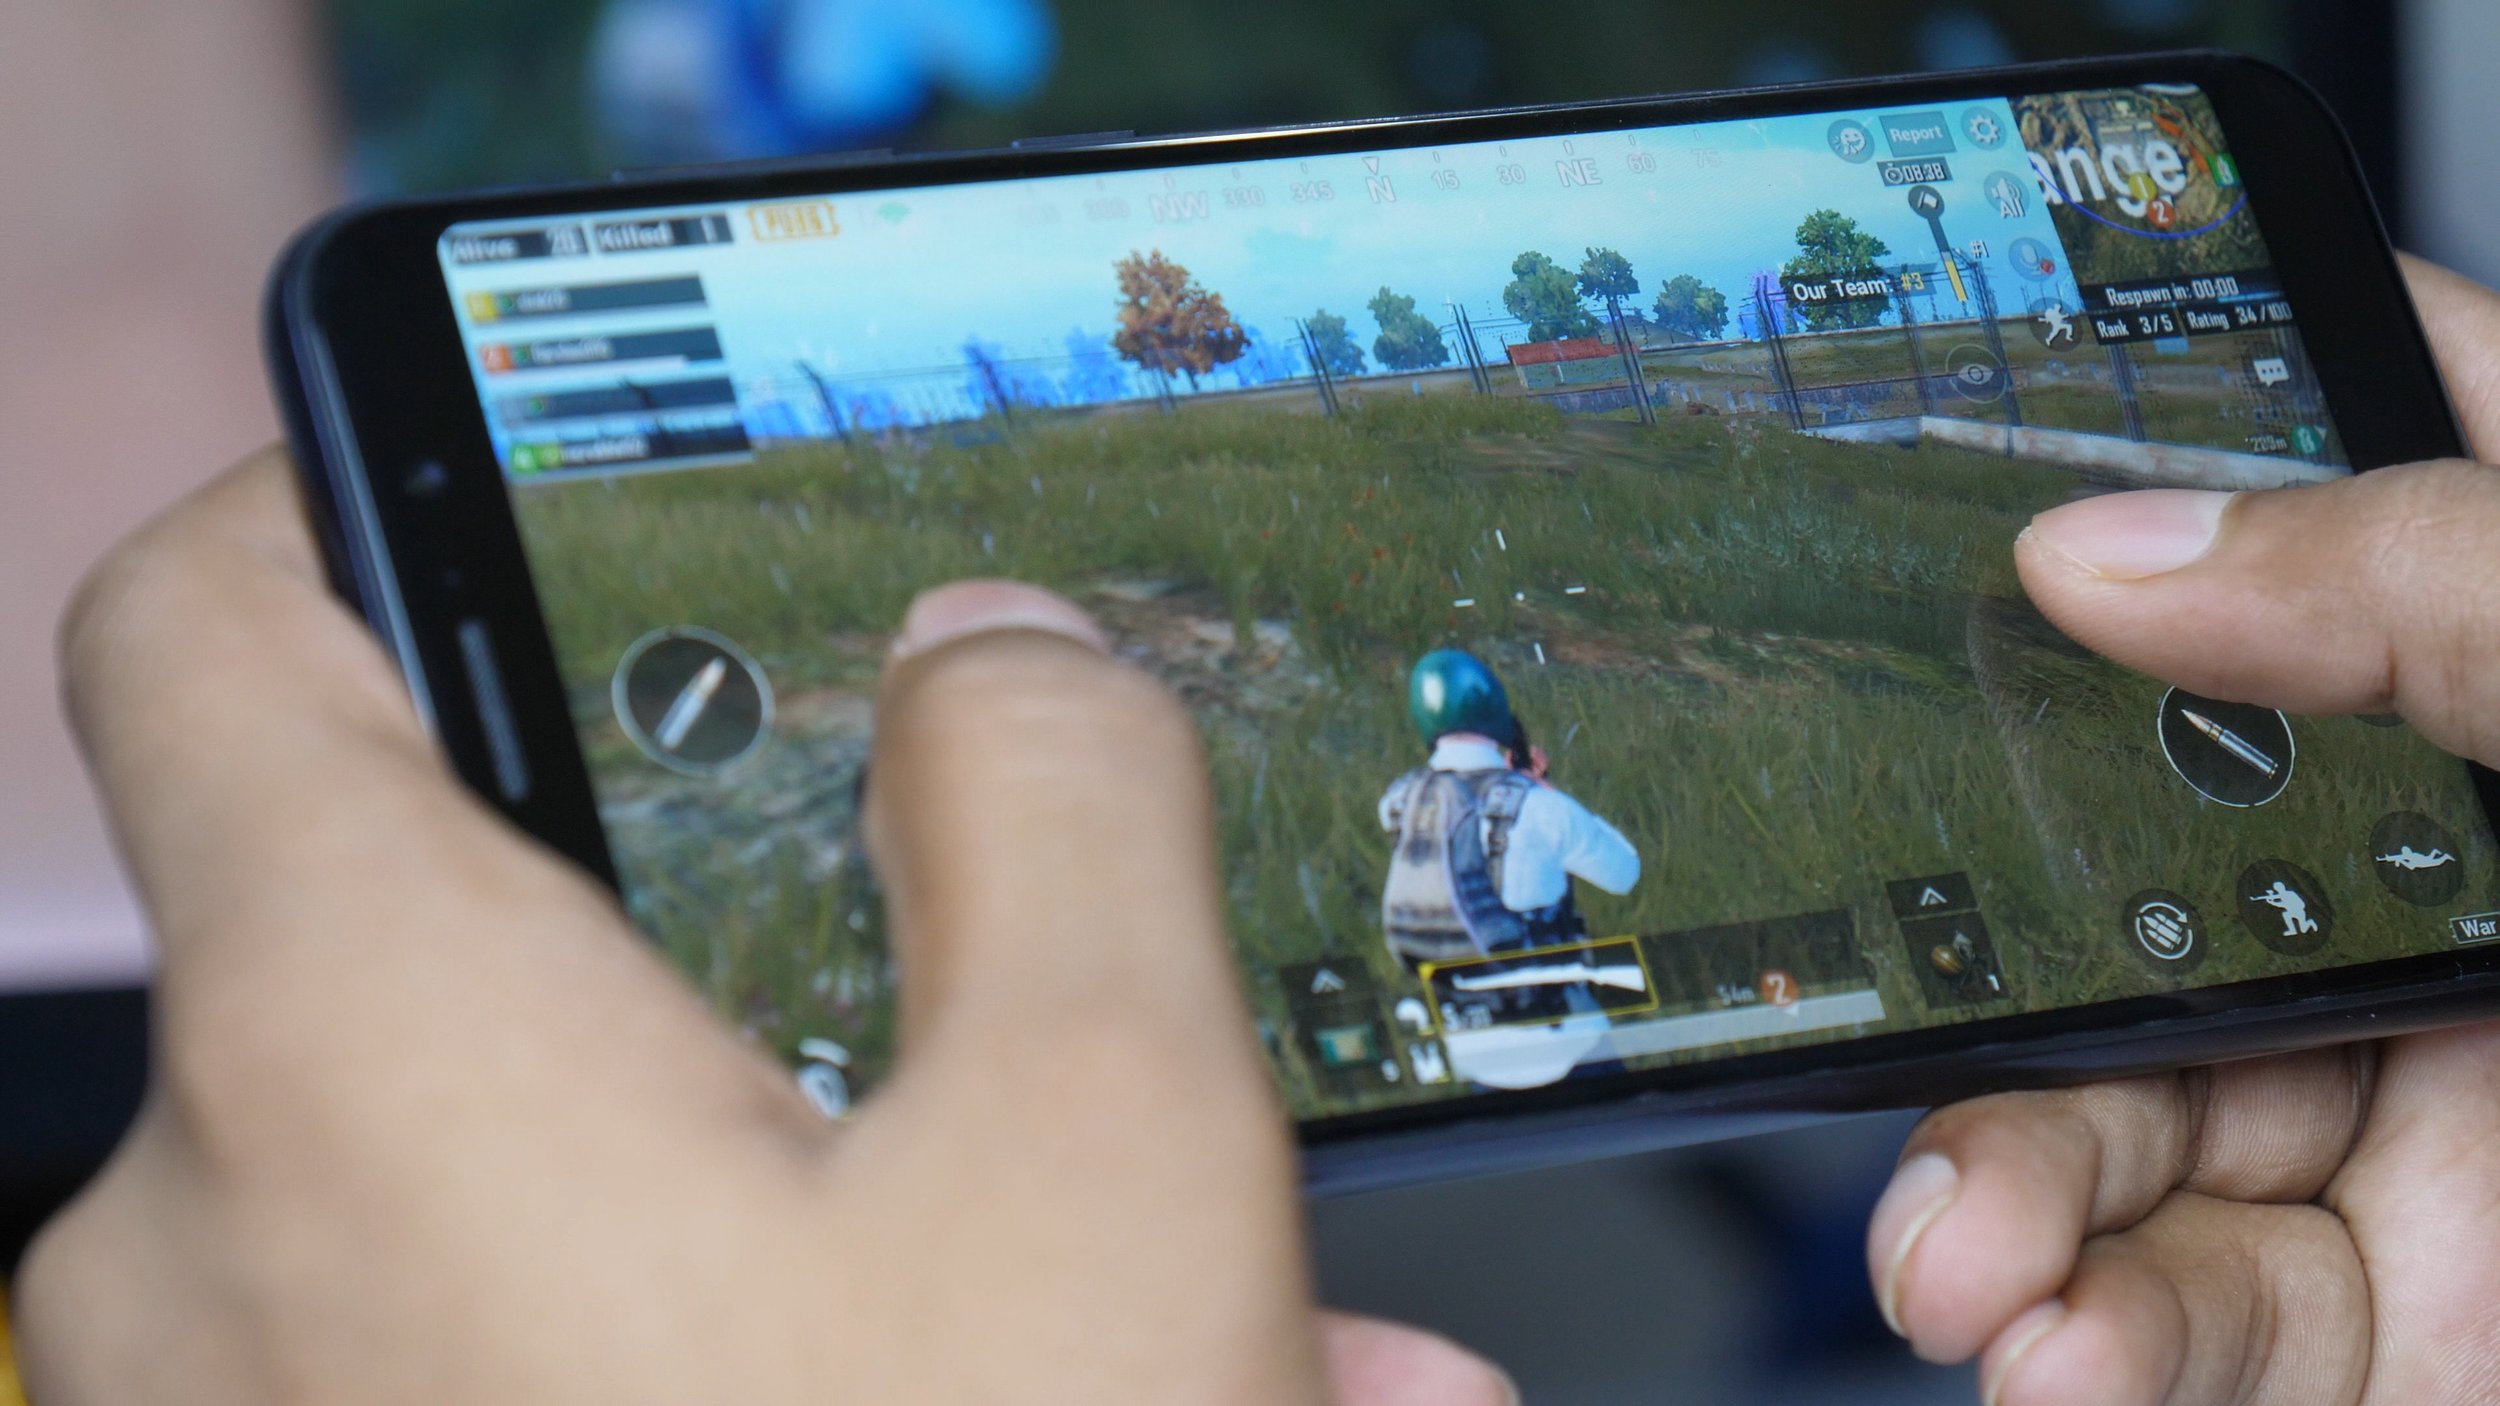 A player plays the mobile version of PUBG. Widespread smartphone usage and fast internet speeds in India have made the game easily available to millions.